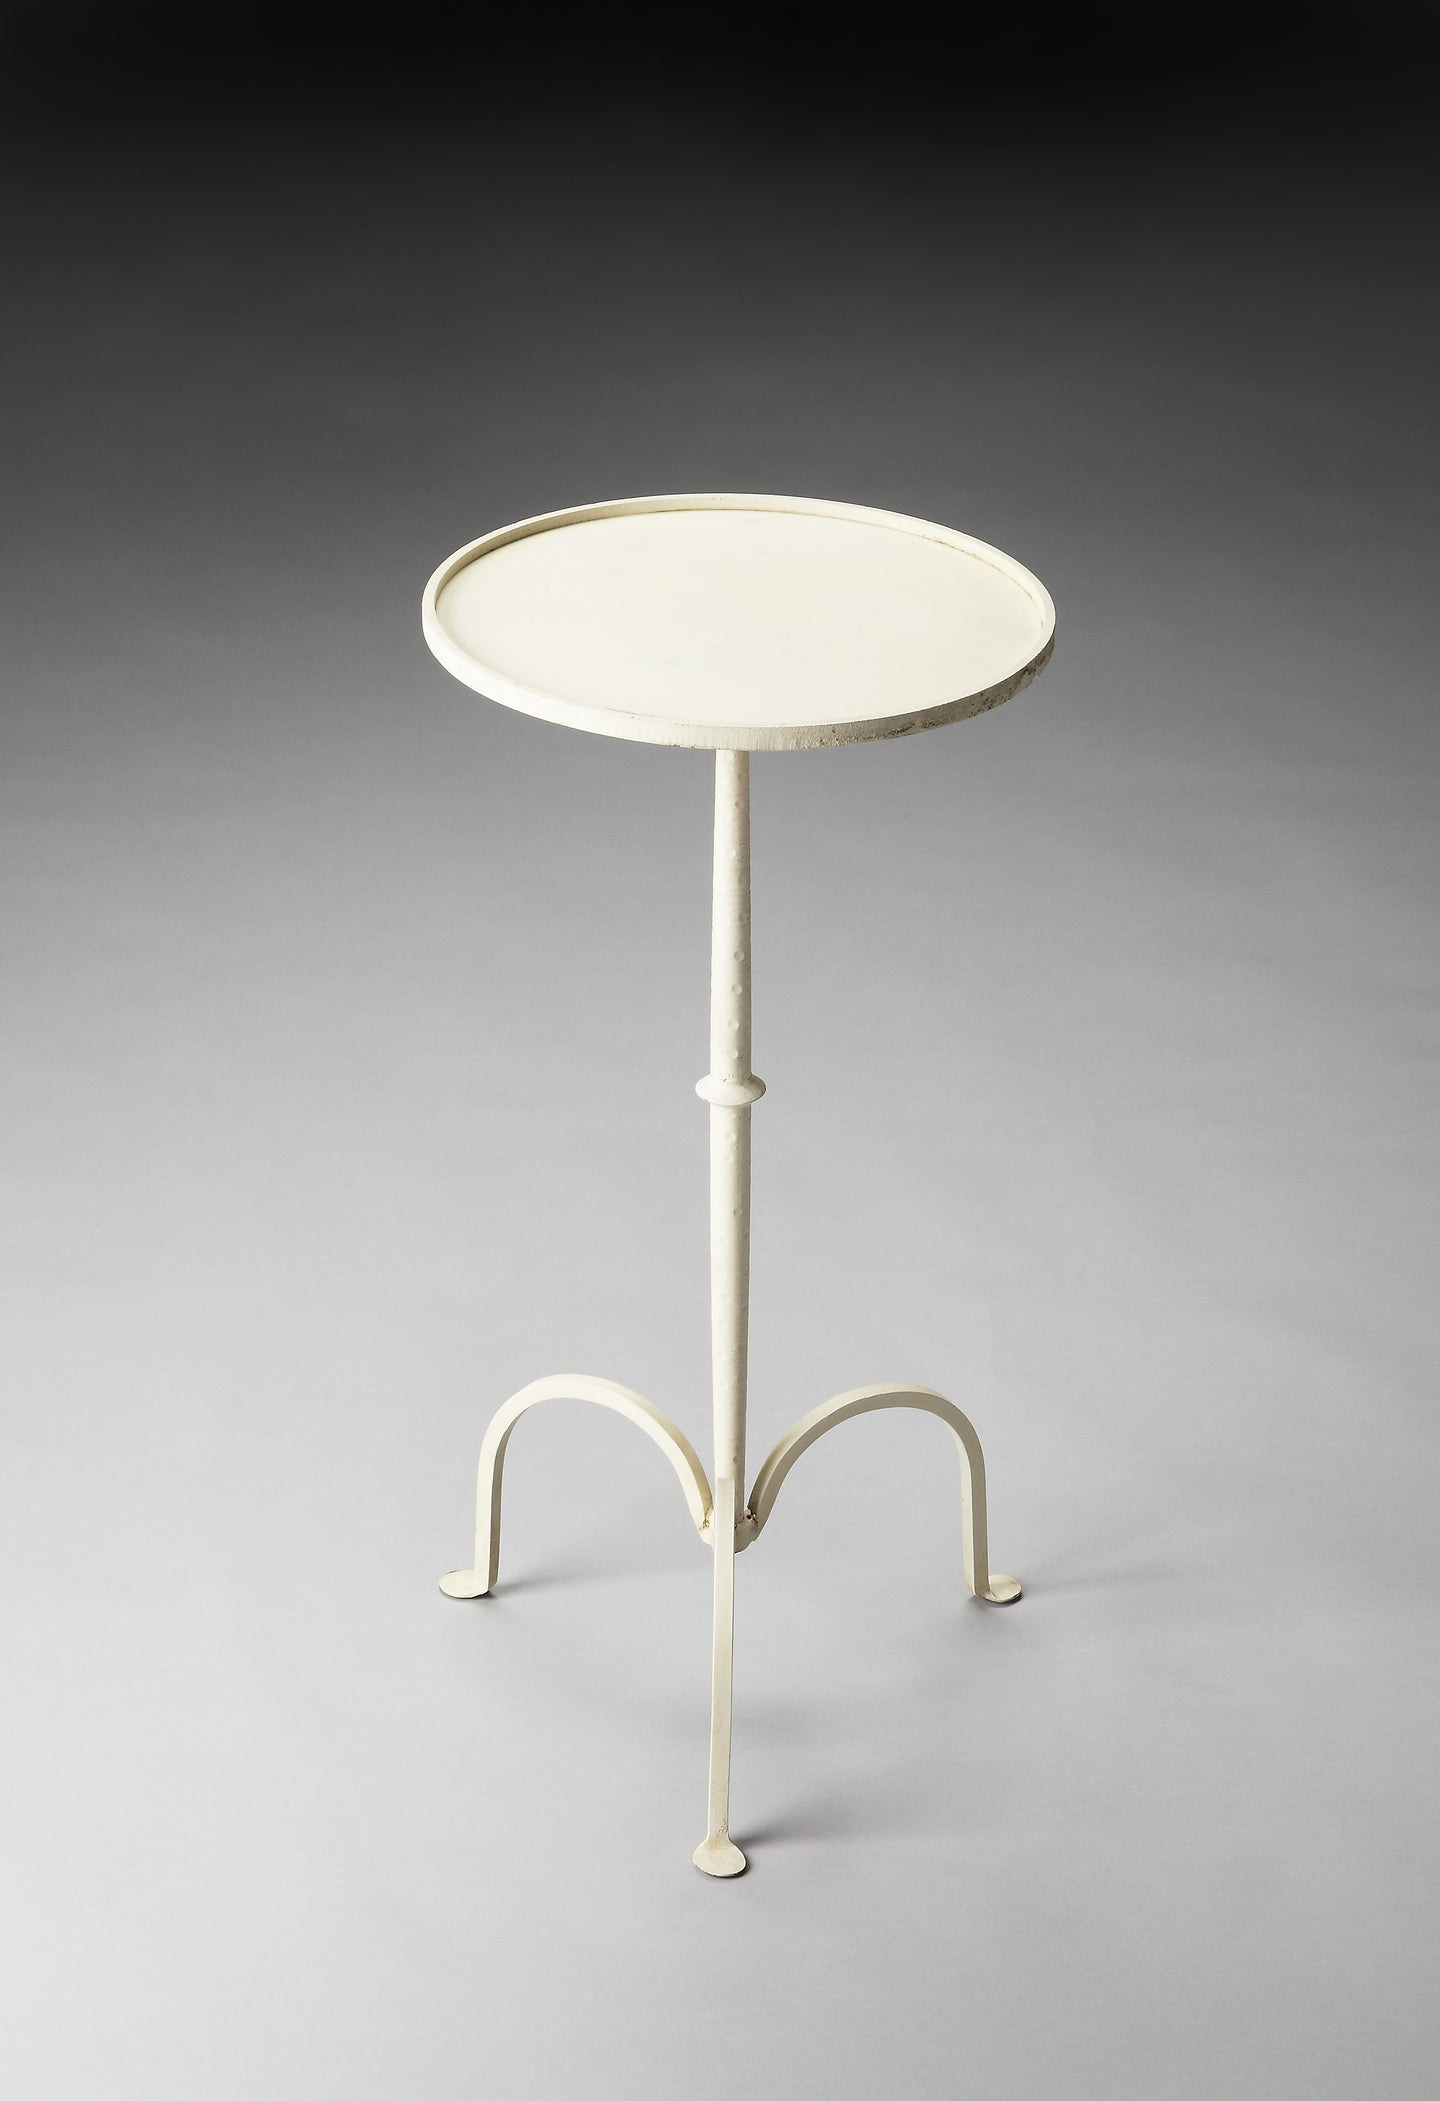 Founders White Iron Pedestal Table by Butler Specialty Company